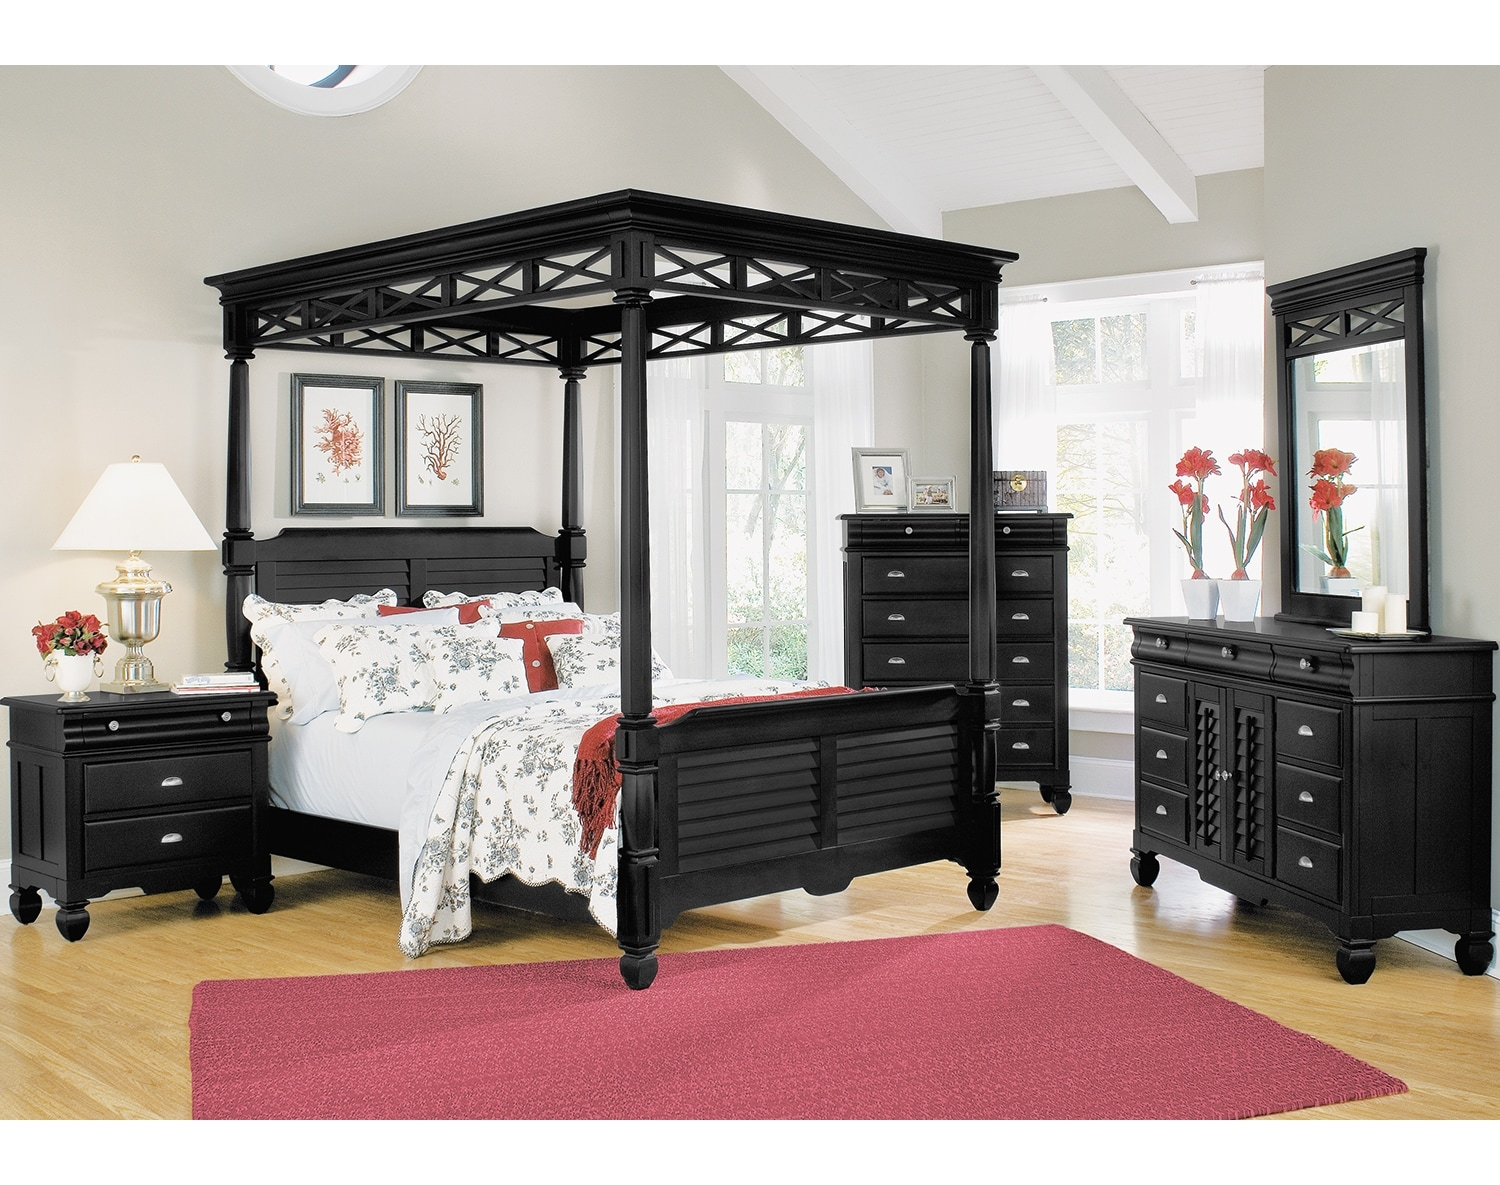 The Magnolia Black Canopy Collection